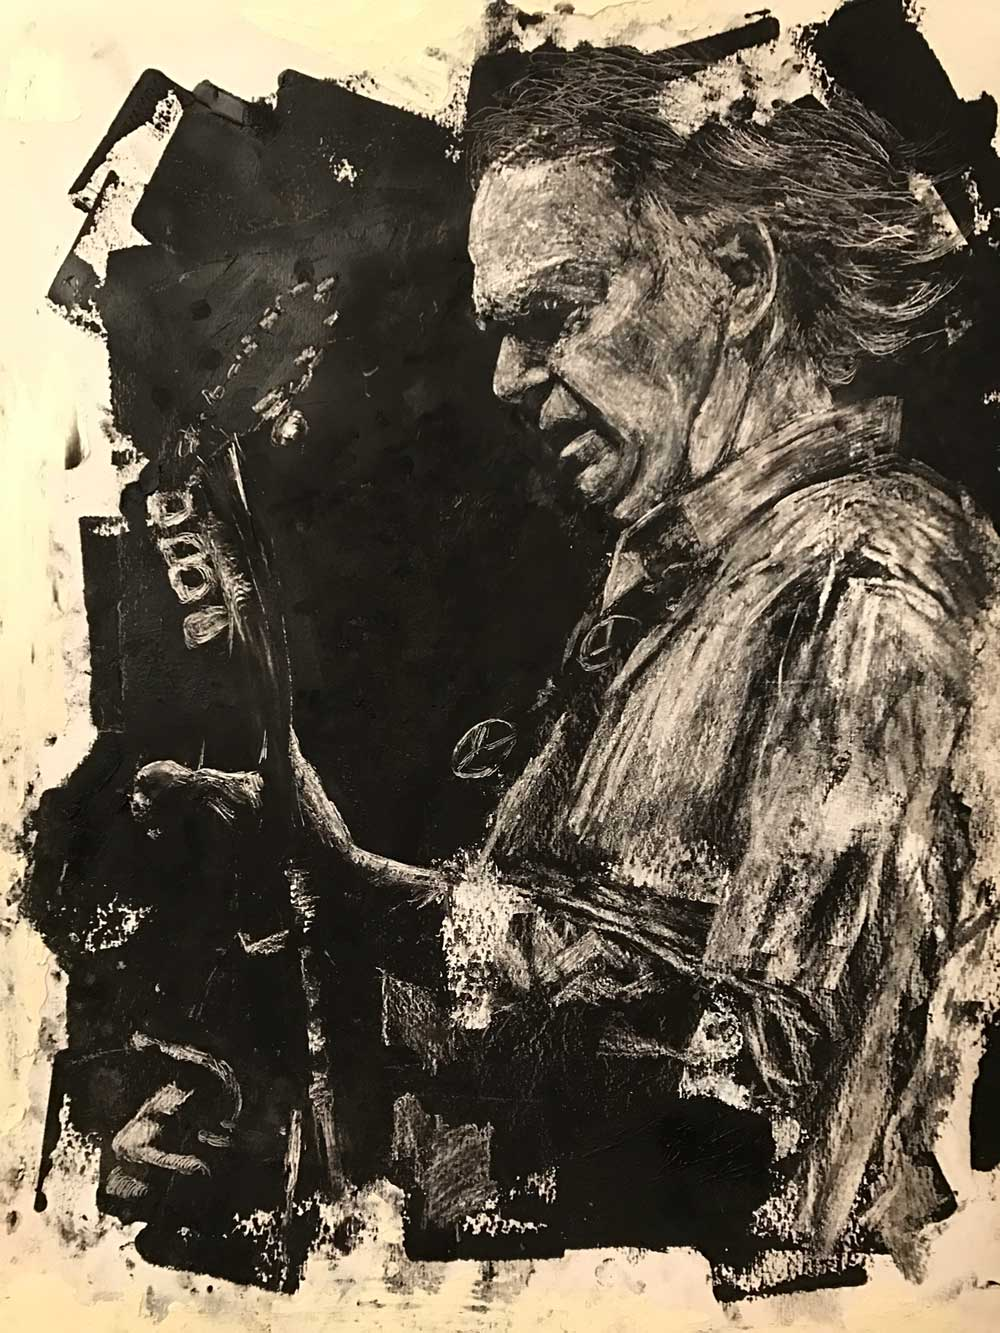 neil young artpicture domenicabuehler